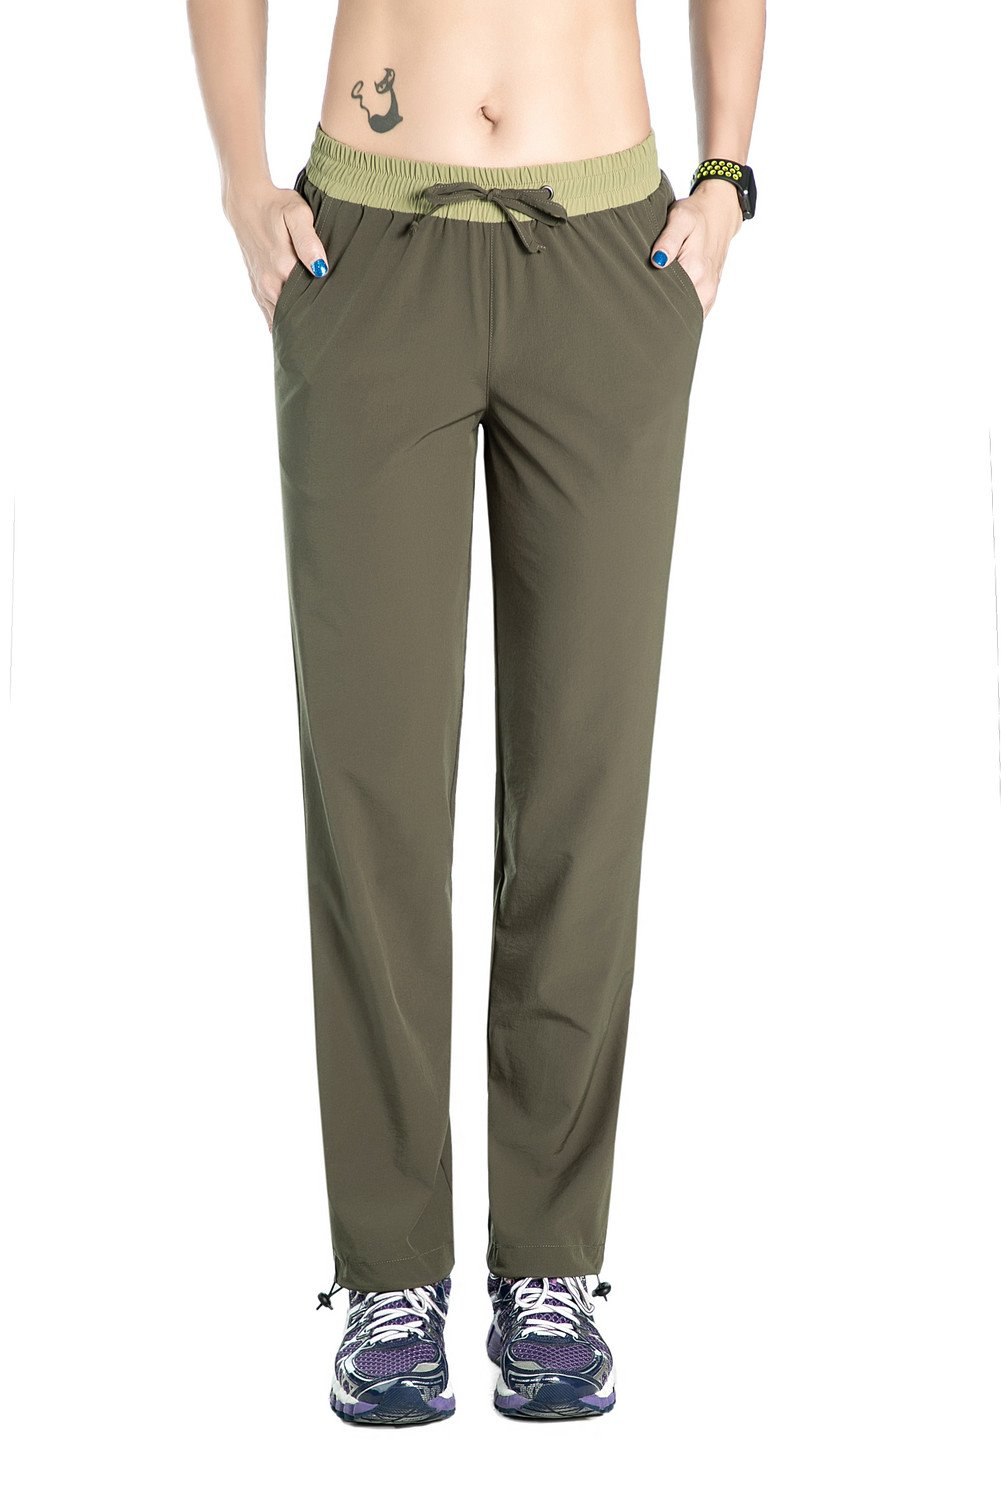 Unitop Women's Quick Dry Cargo Crop Travel Pants With Drawstring Green M/32 Inseam